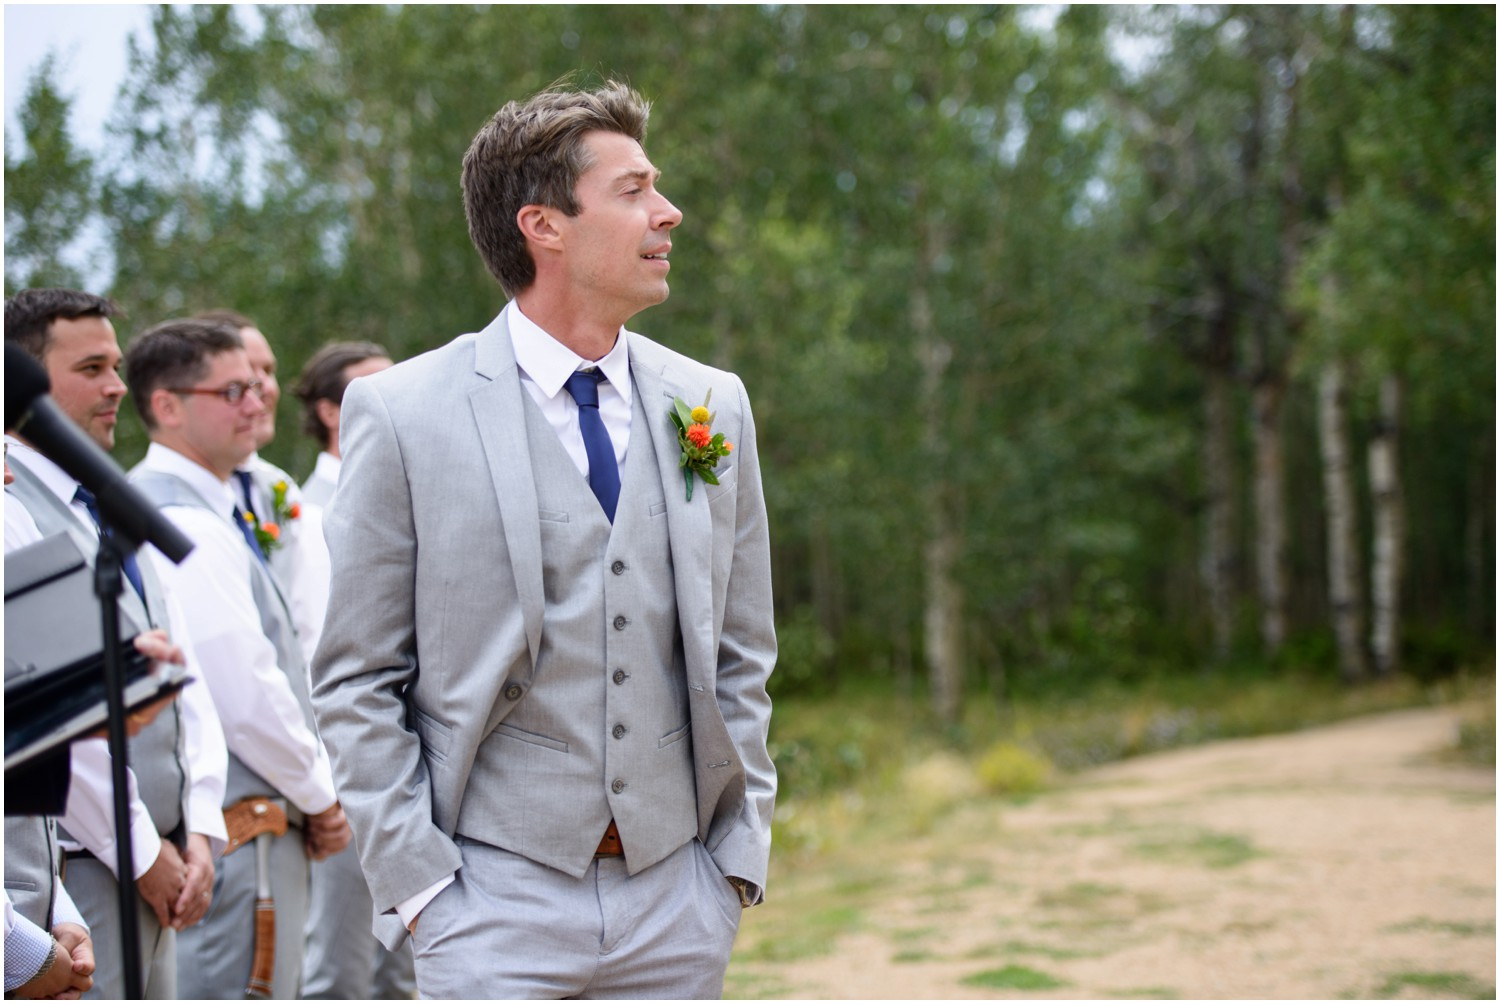 367-Granby-ranch-summer-wedding-photography-Ross.jpg